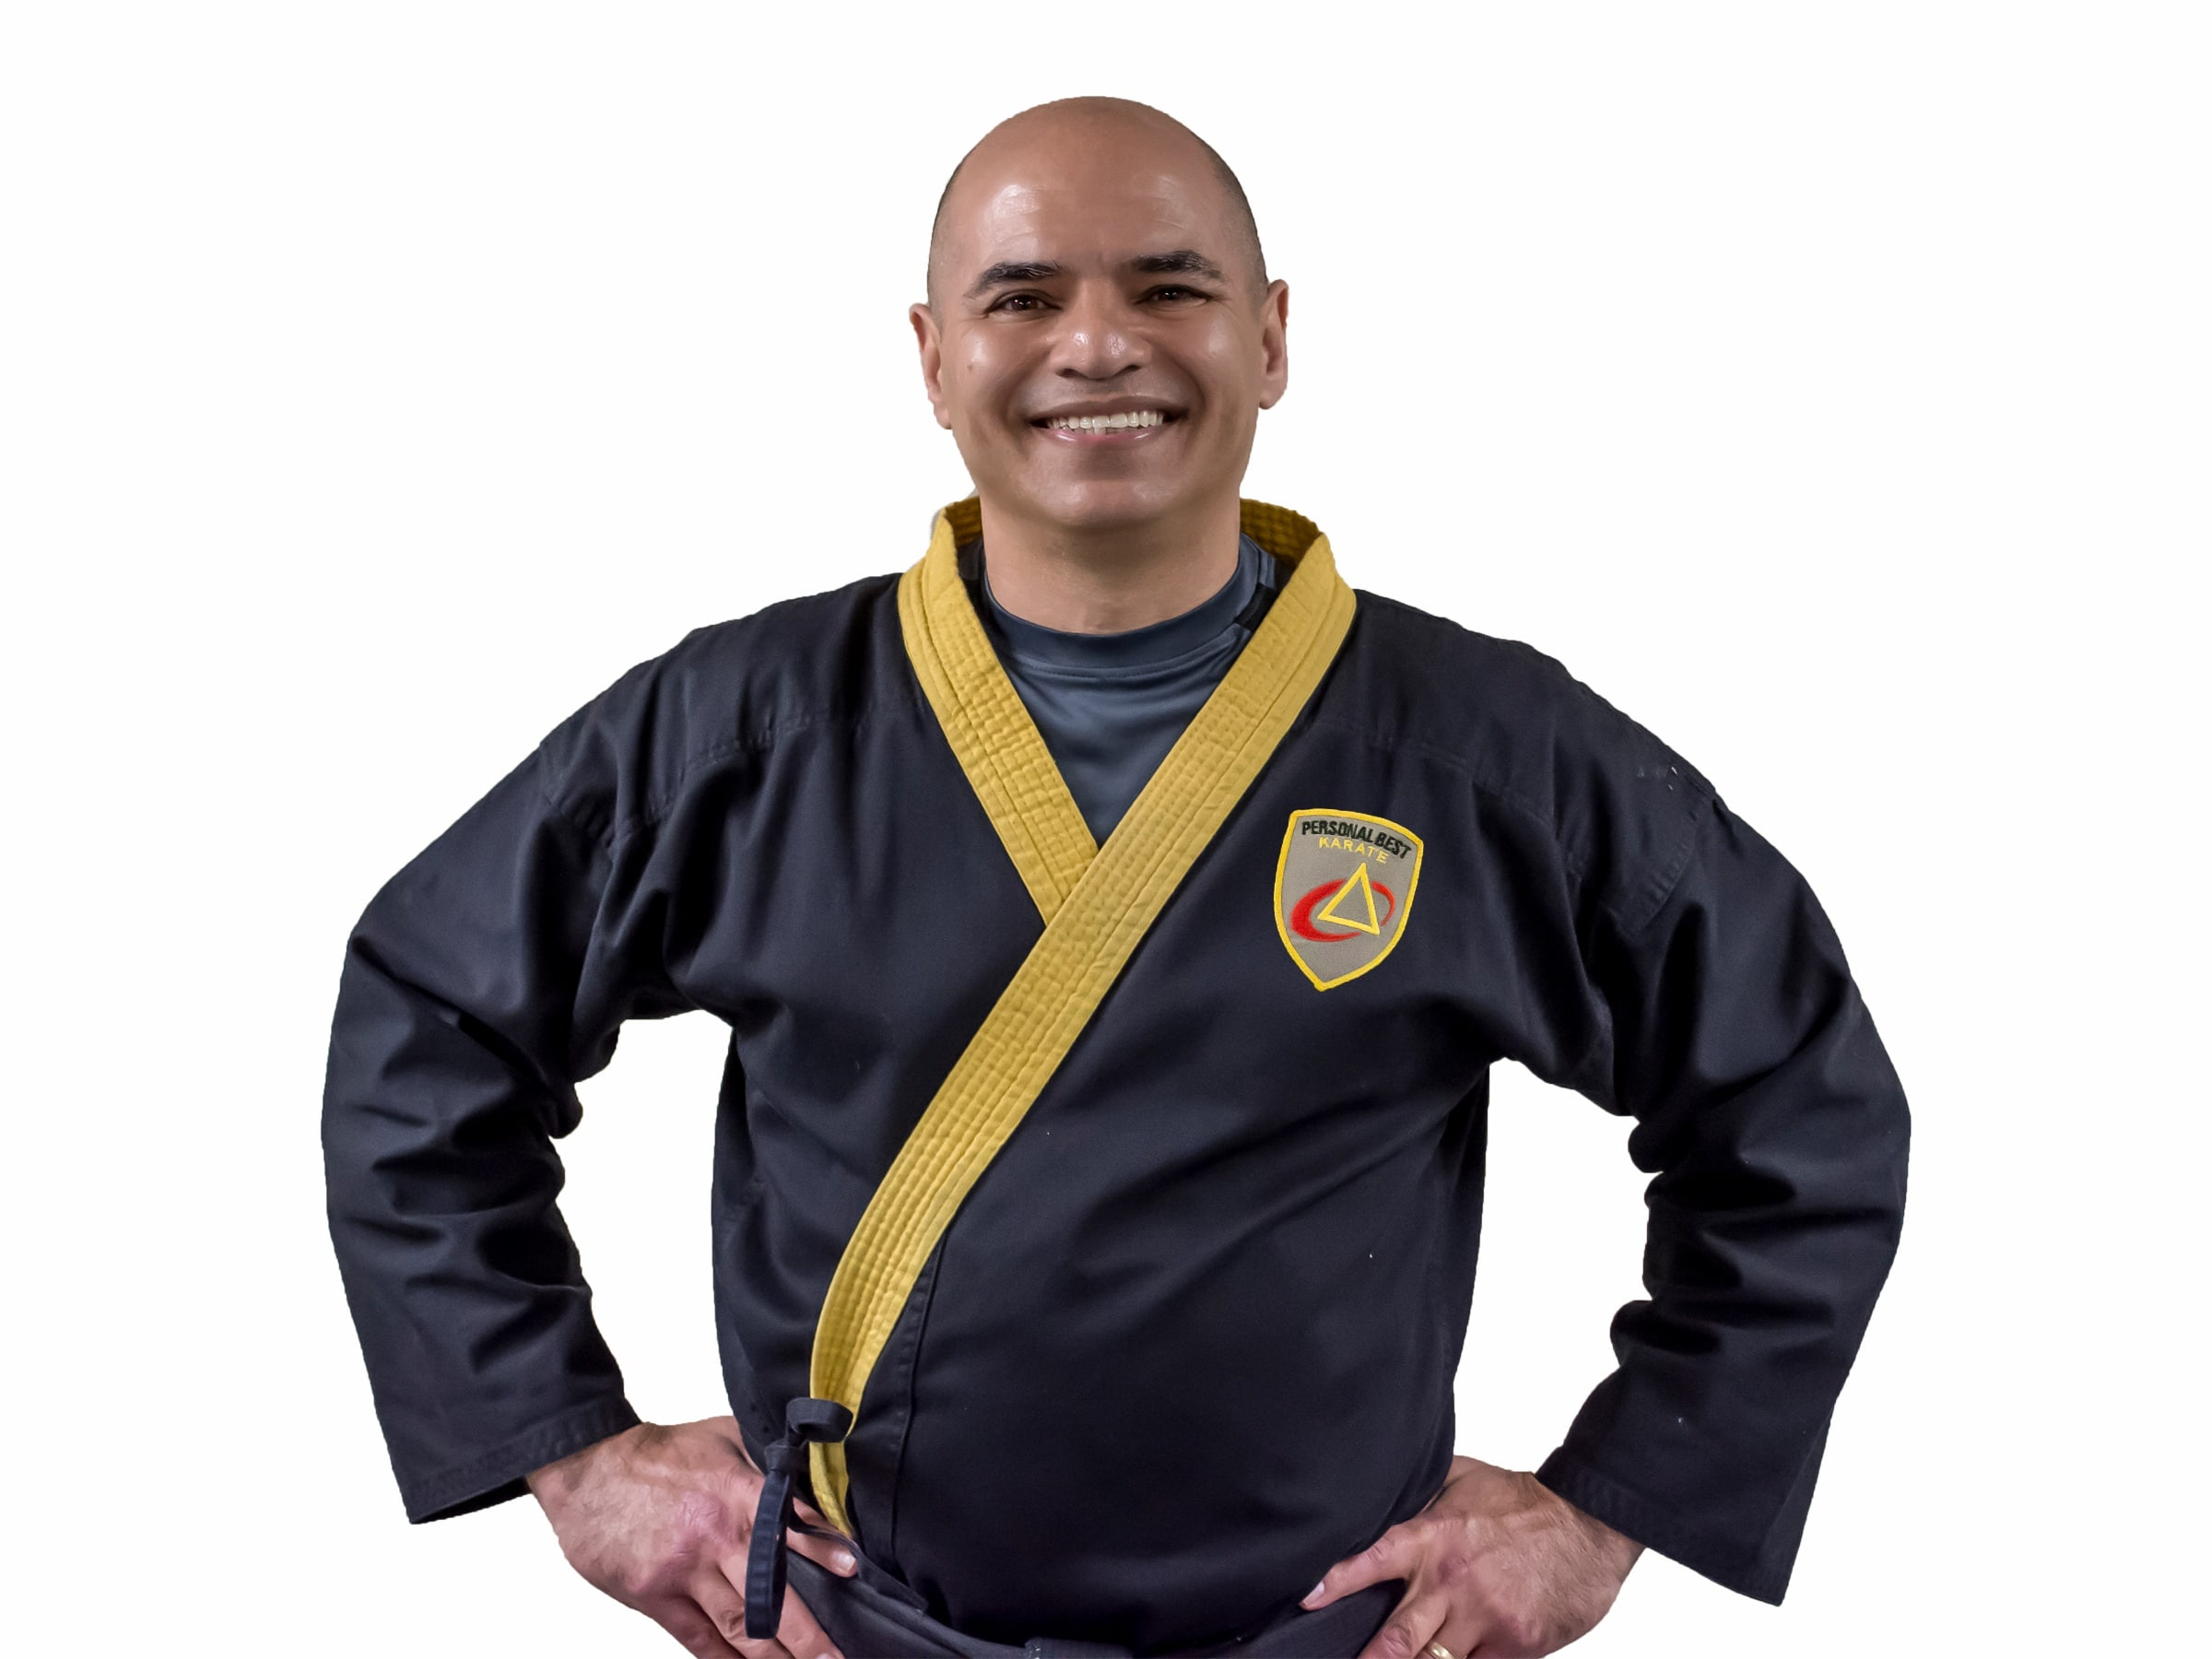 Rolando Perez in Norton - Personal Best Karate